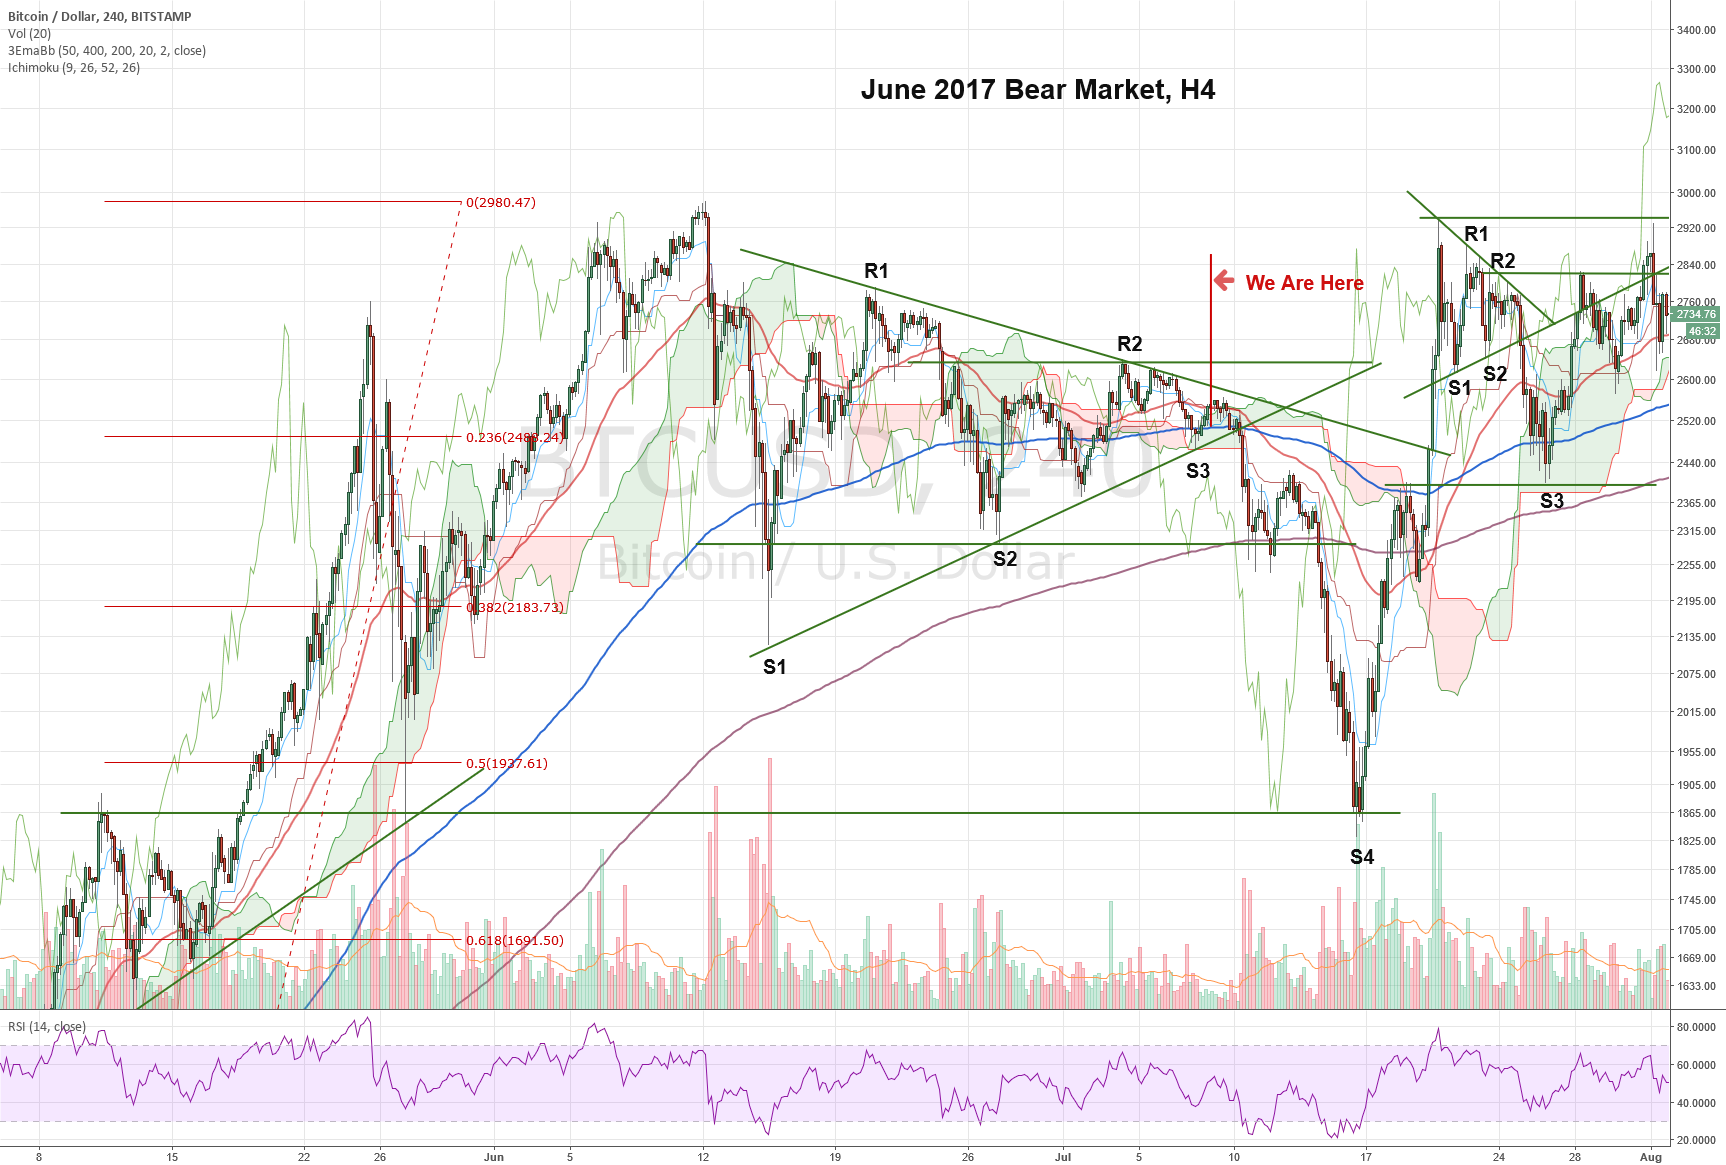 Anatomy of a Bear Market: June 2017 Bear Market, H4 - CoinMarket ...